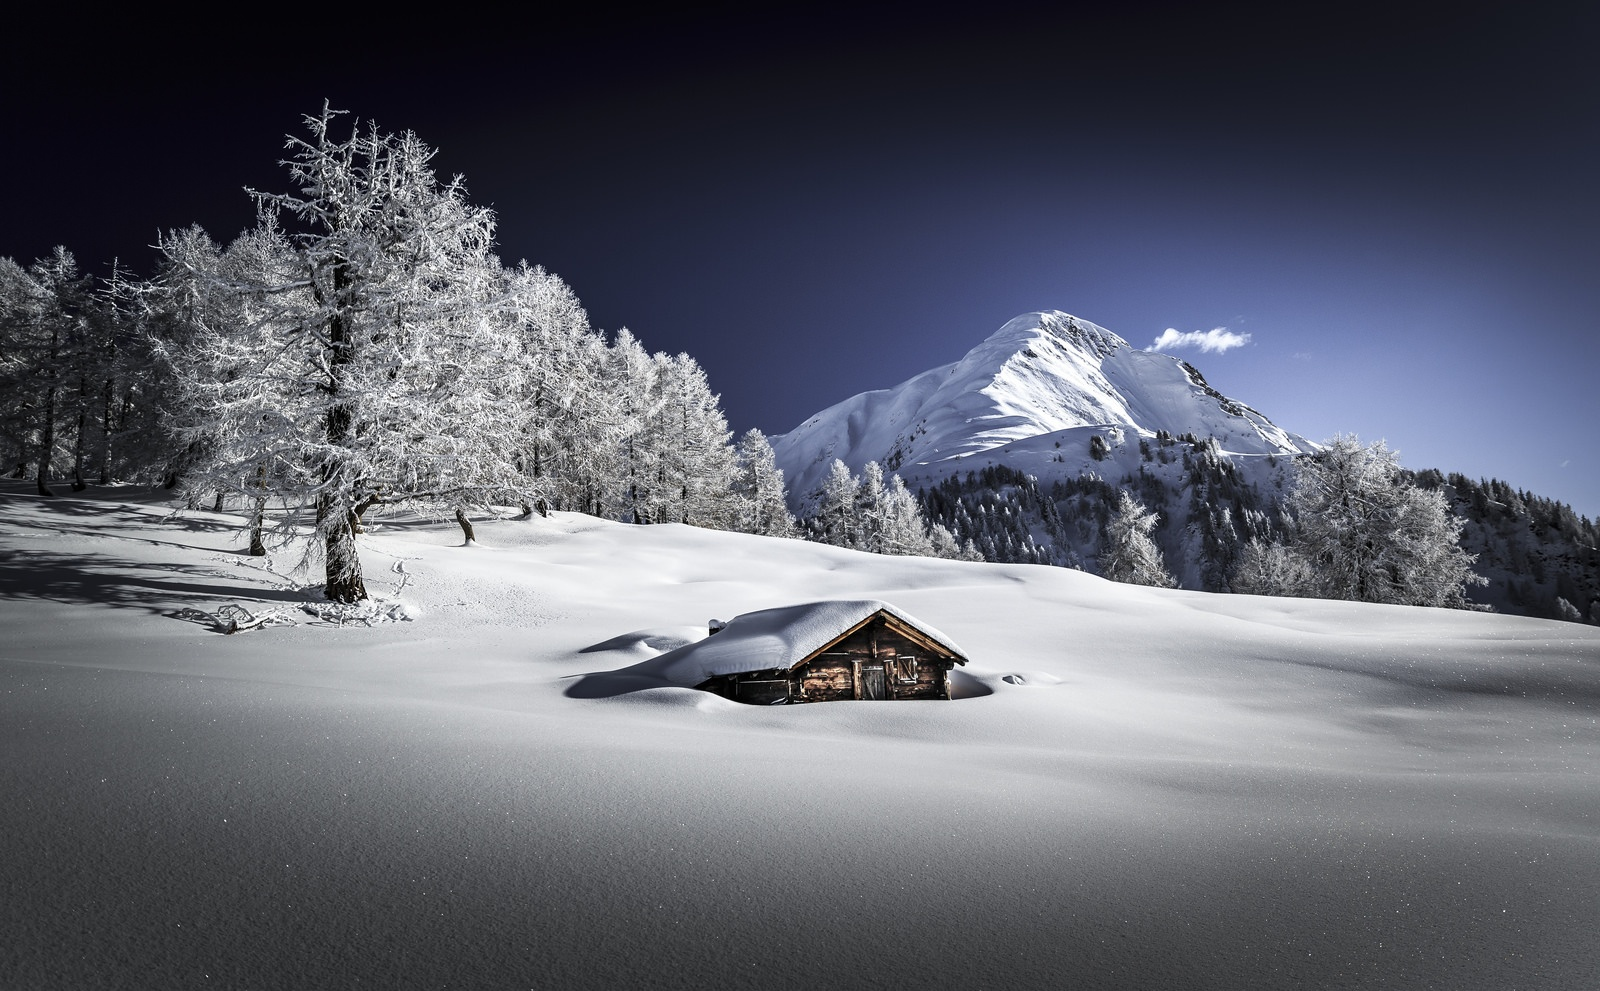 Snowy Landscapes by Frederic Huber